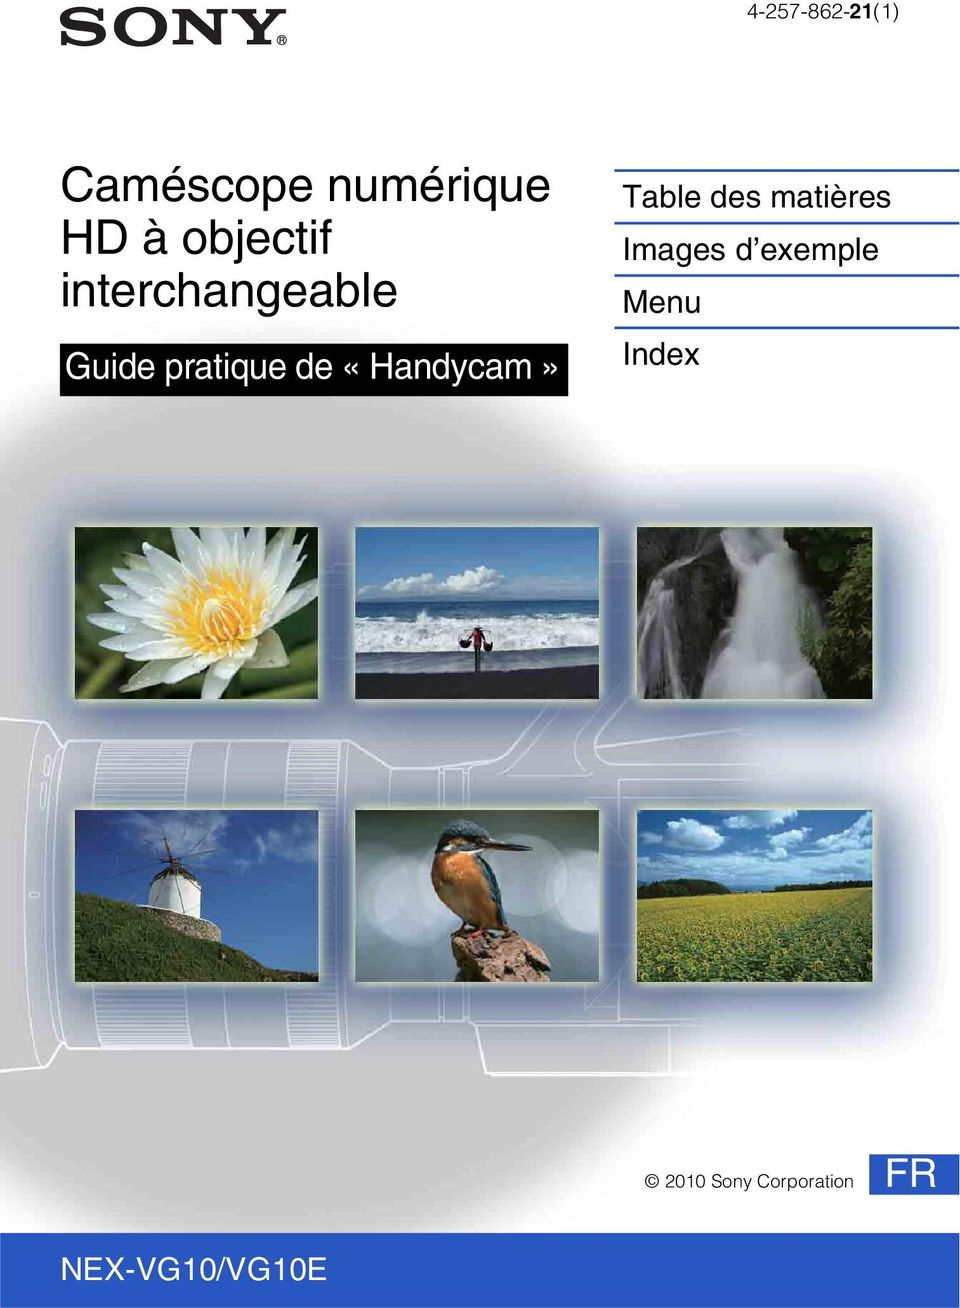 pratique de «Handycam» Menu Index